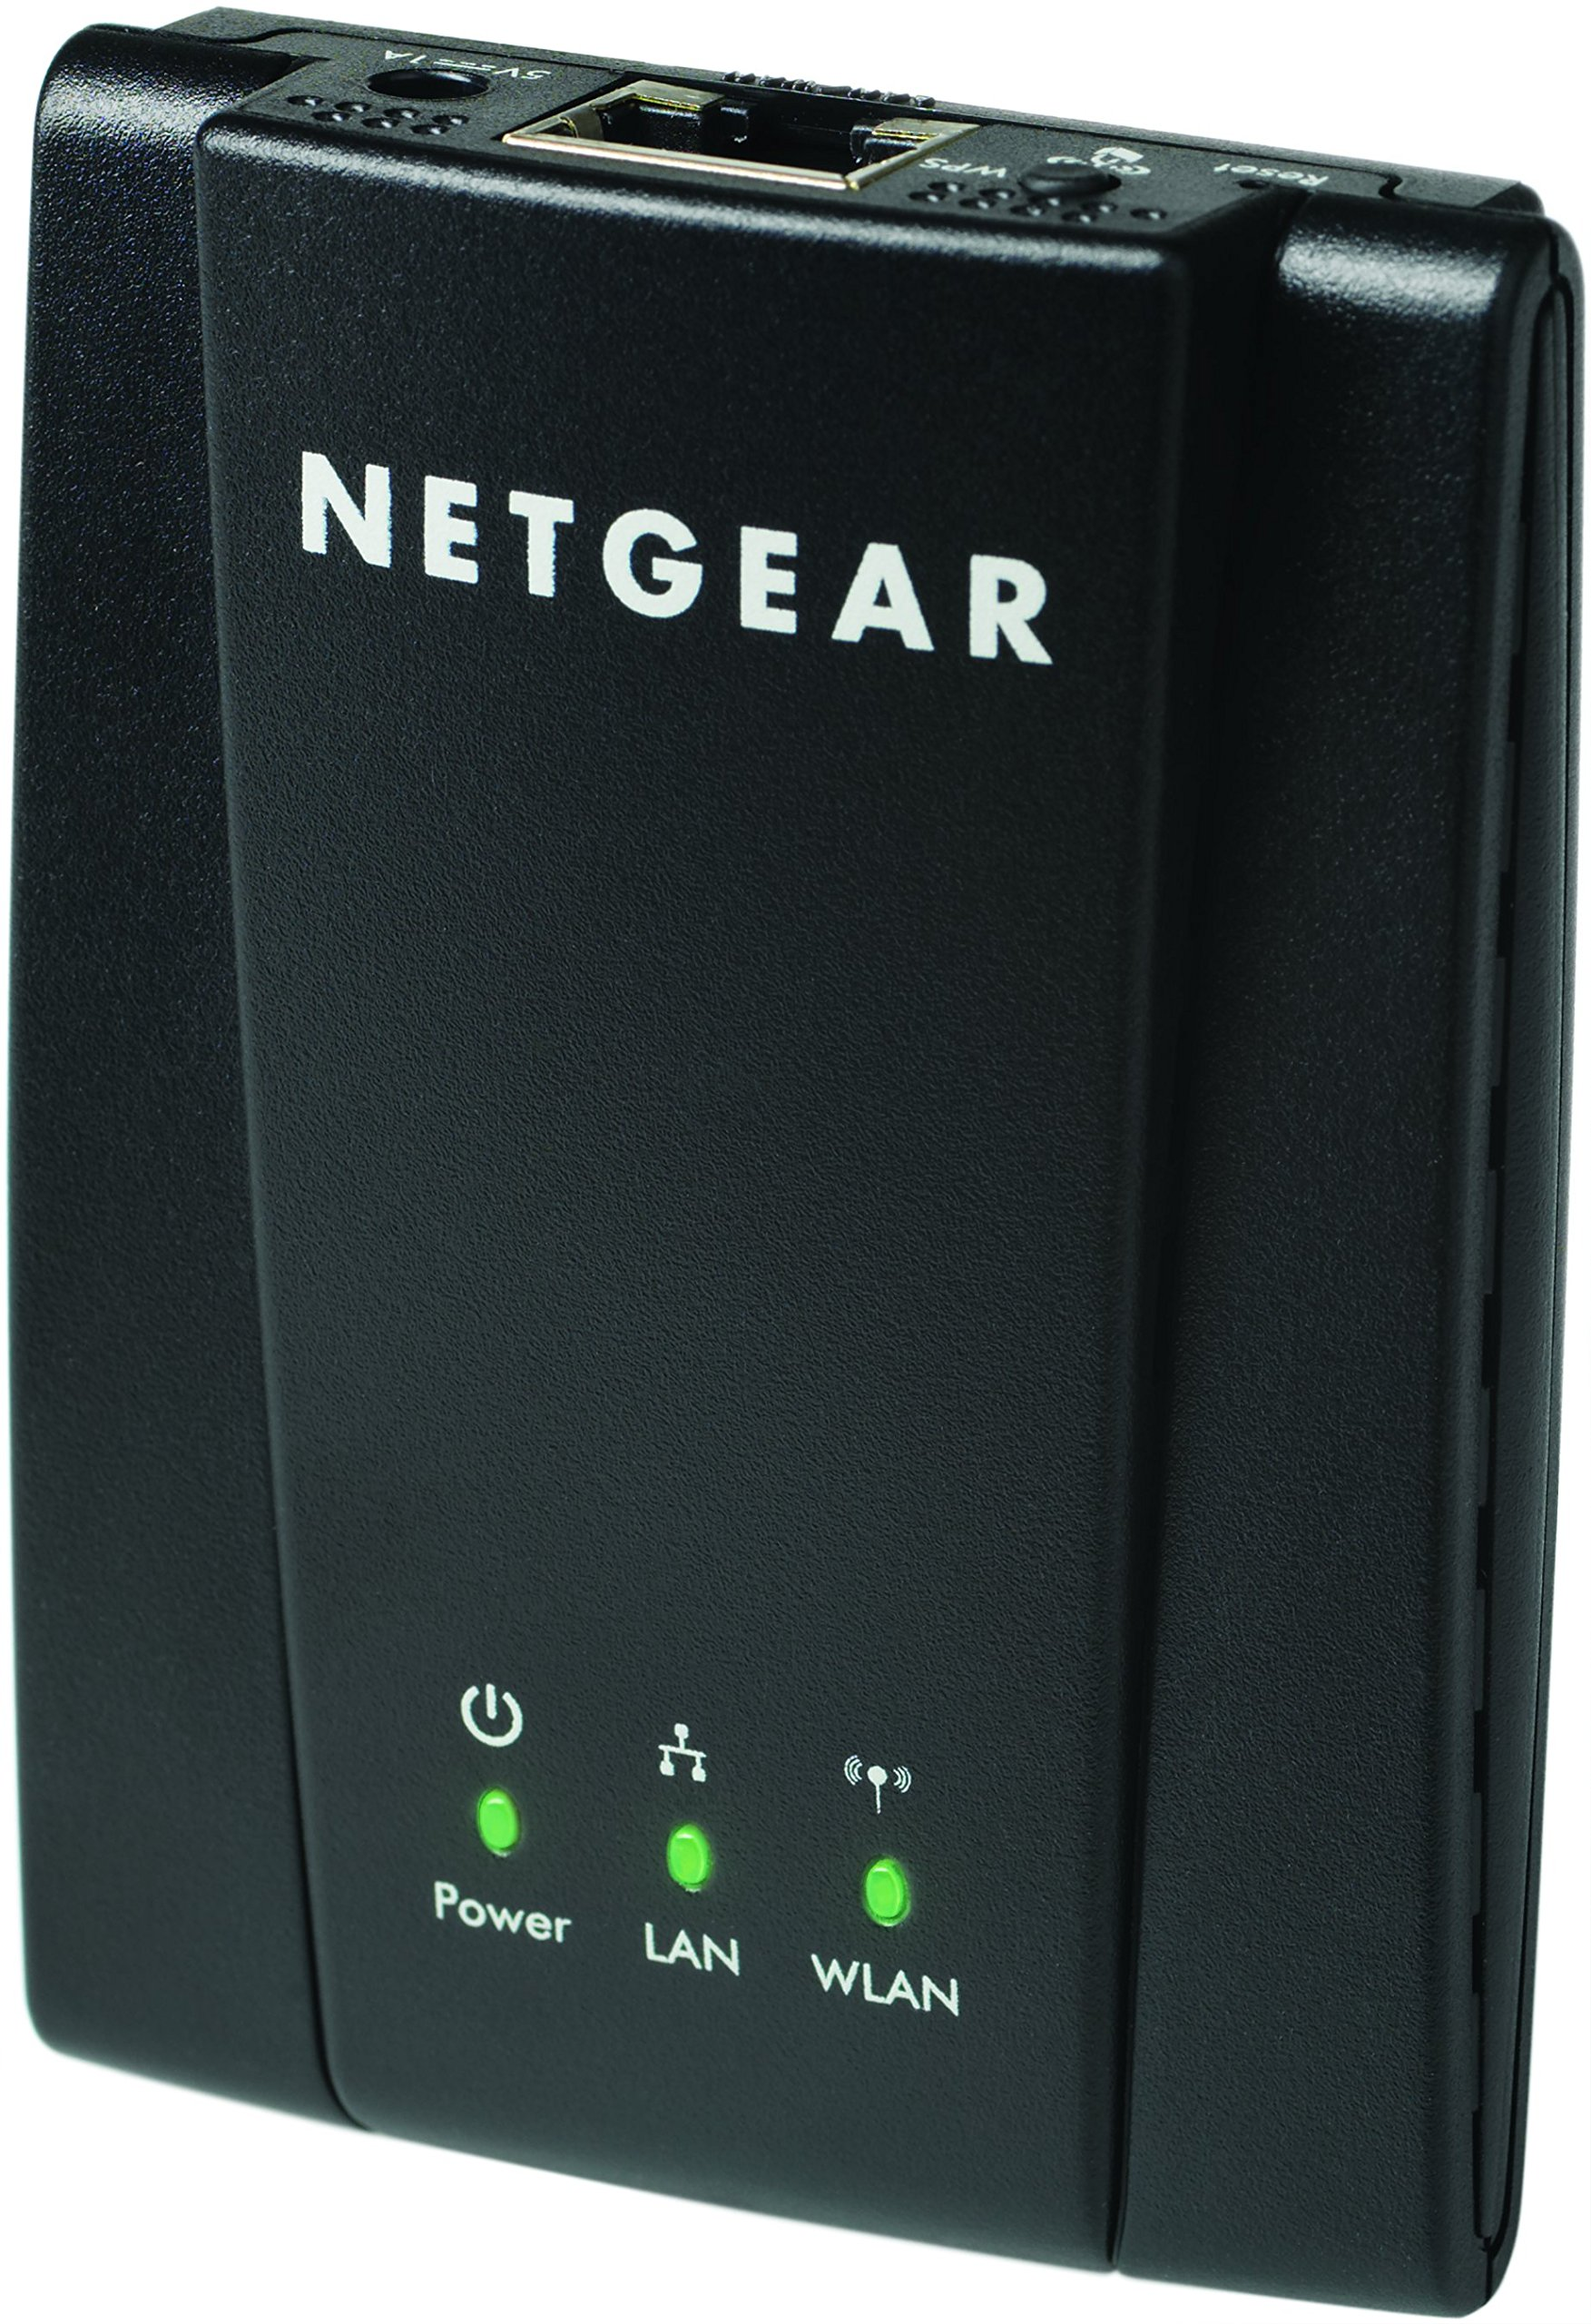 NETGEAR Universal N300 Wi-Fi to Ethernet Adapter (WNCE2001)